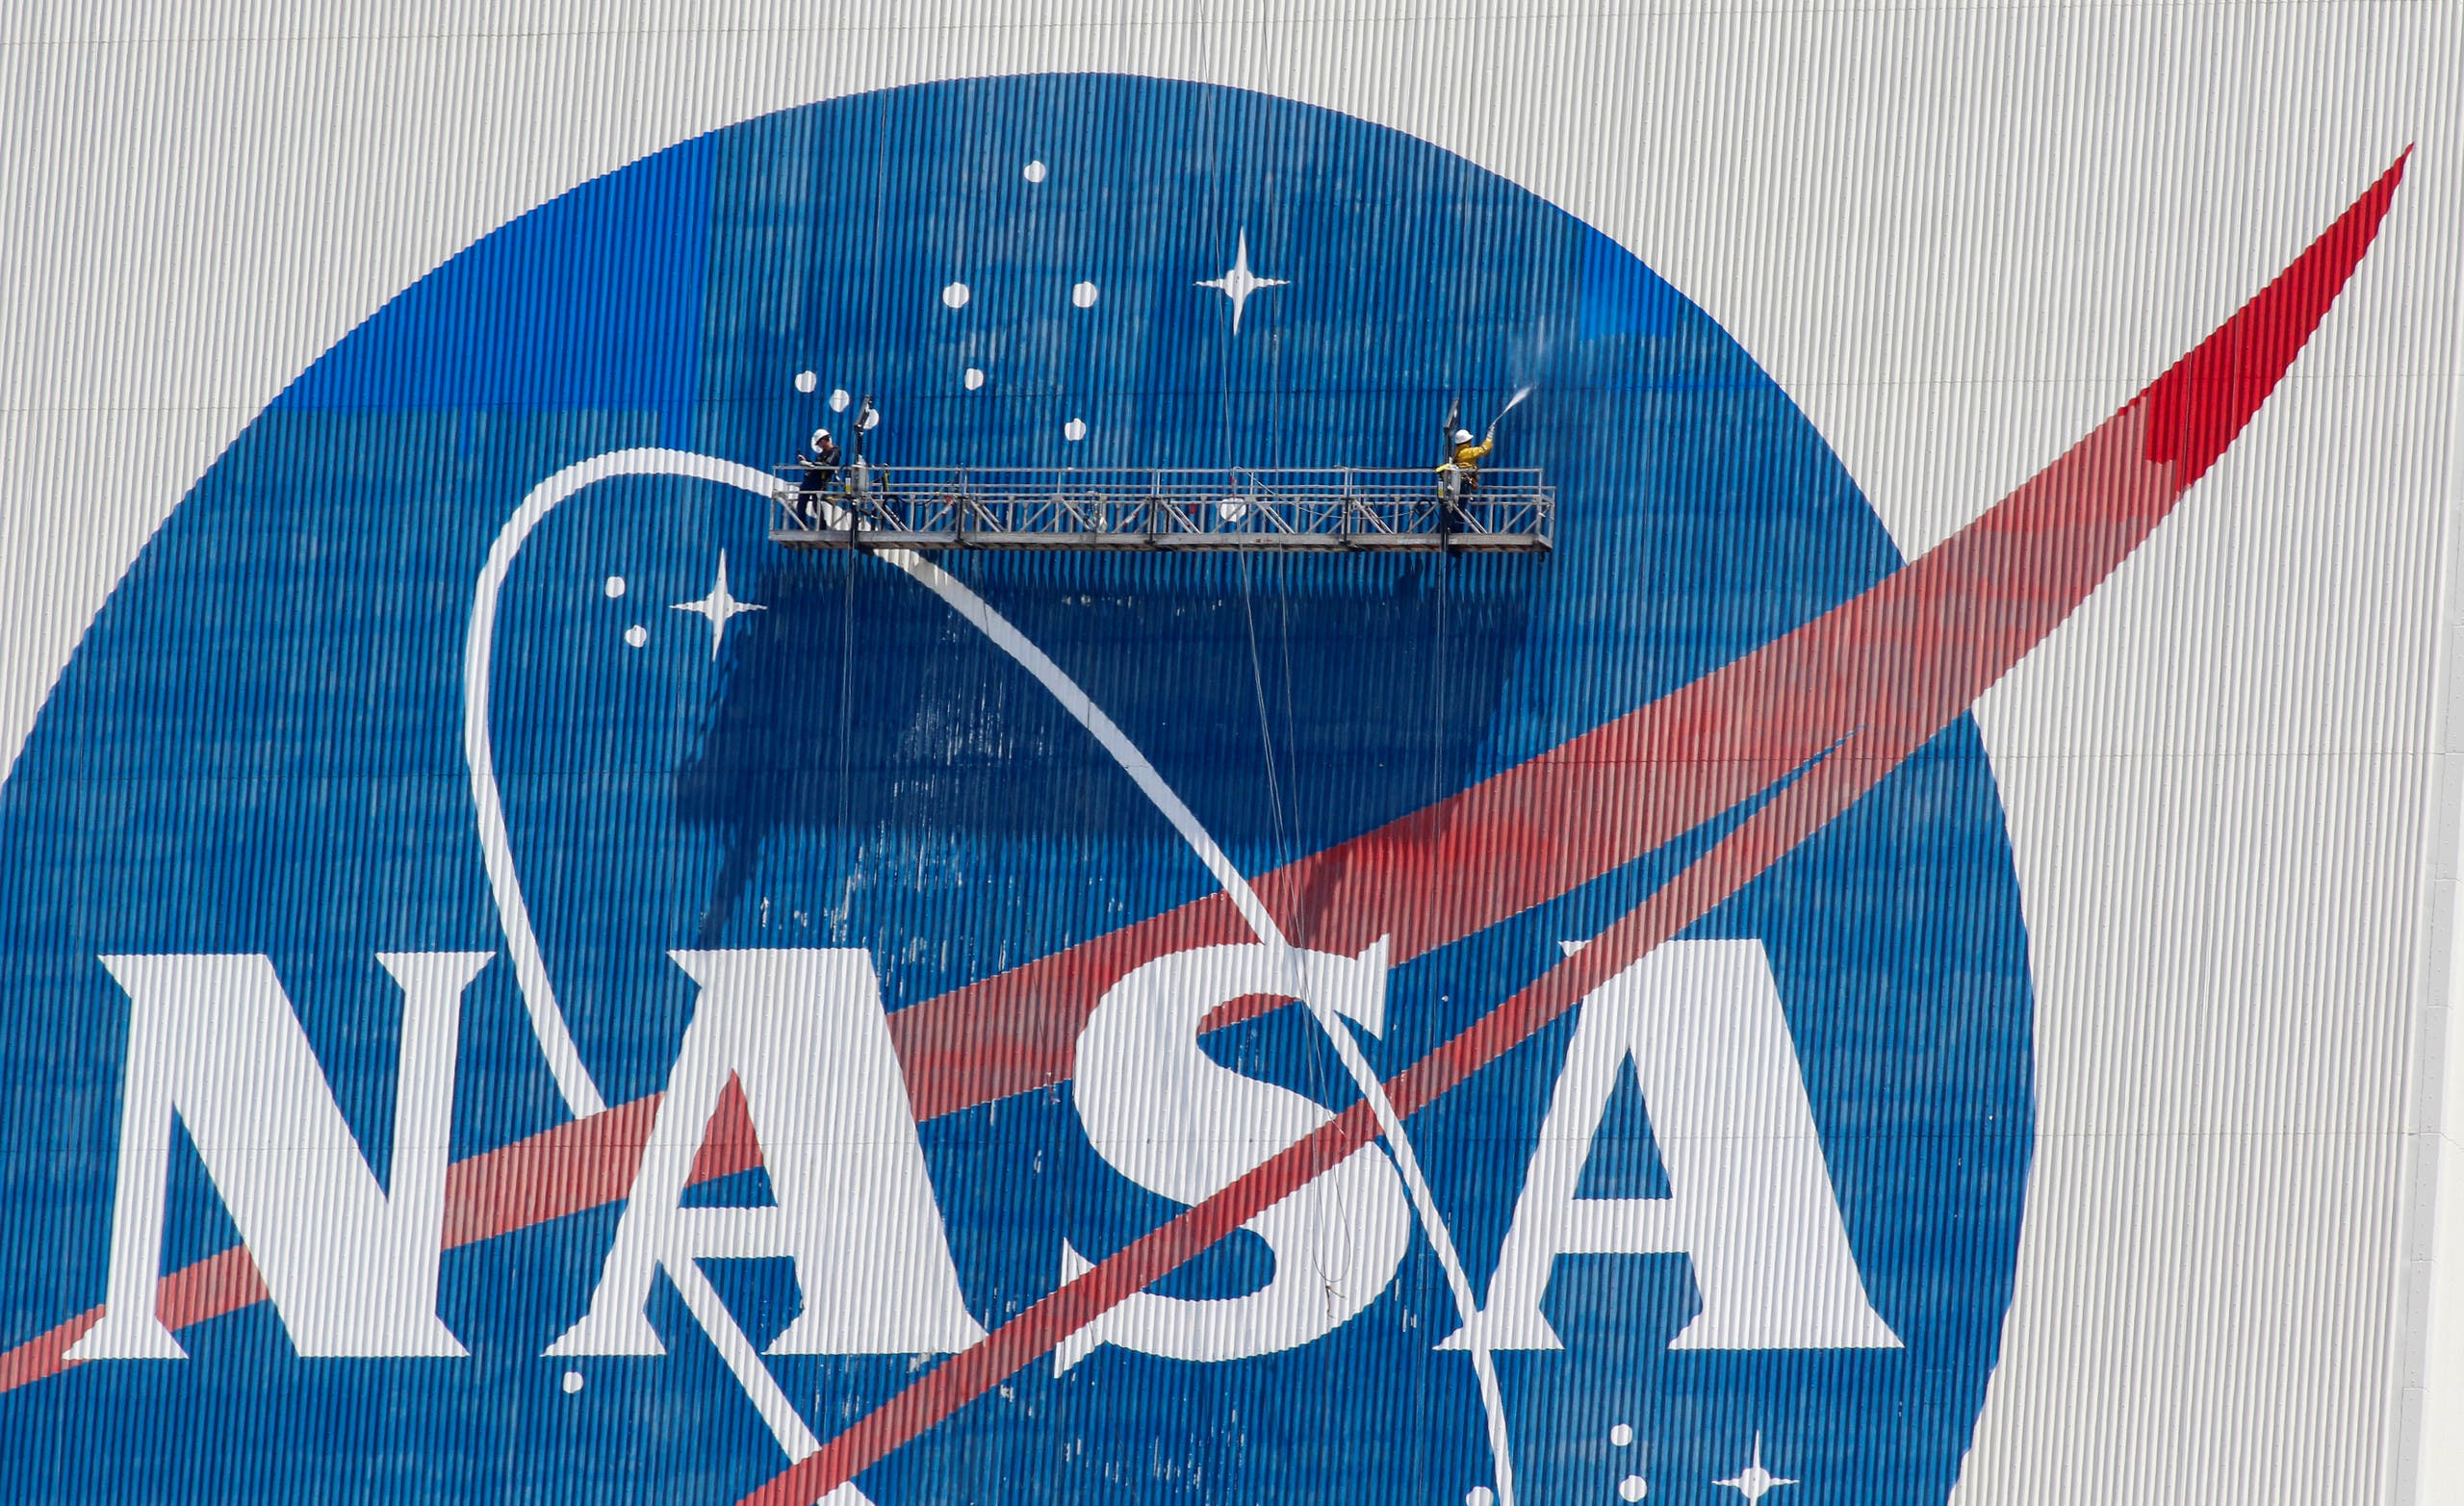 Workers pressure wash the logo of NASA on the Vehicle Assembly Building before SpaceX will send two NASA astronauts to the International Space Station aboard its Falcon 9 rocket, at the Kennedy Space Center in Cape Canaveral, Florida, U.S., May 19, 2020. (Reuters)